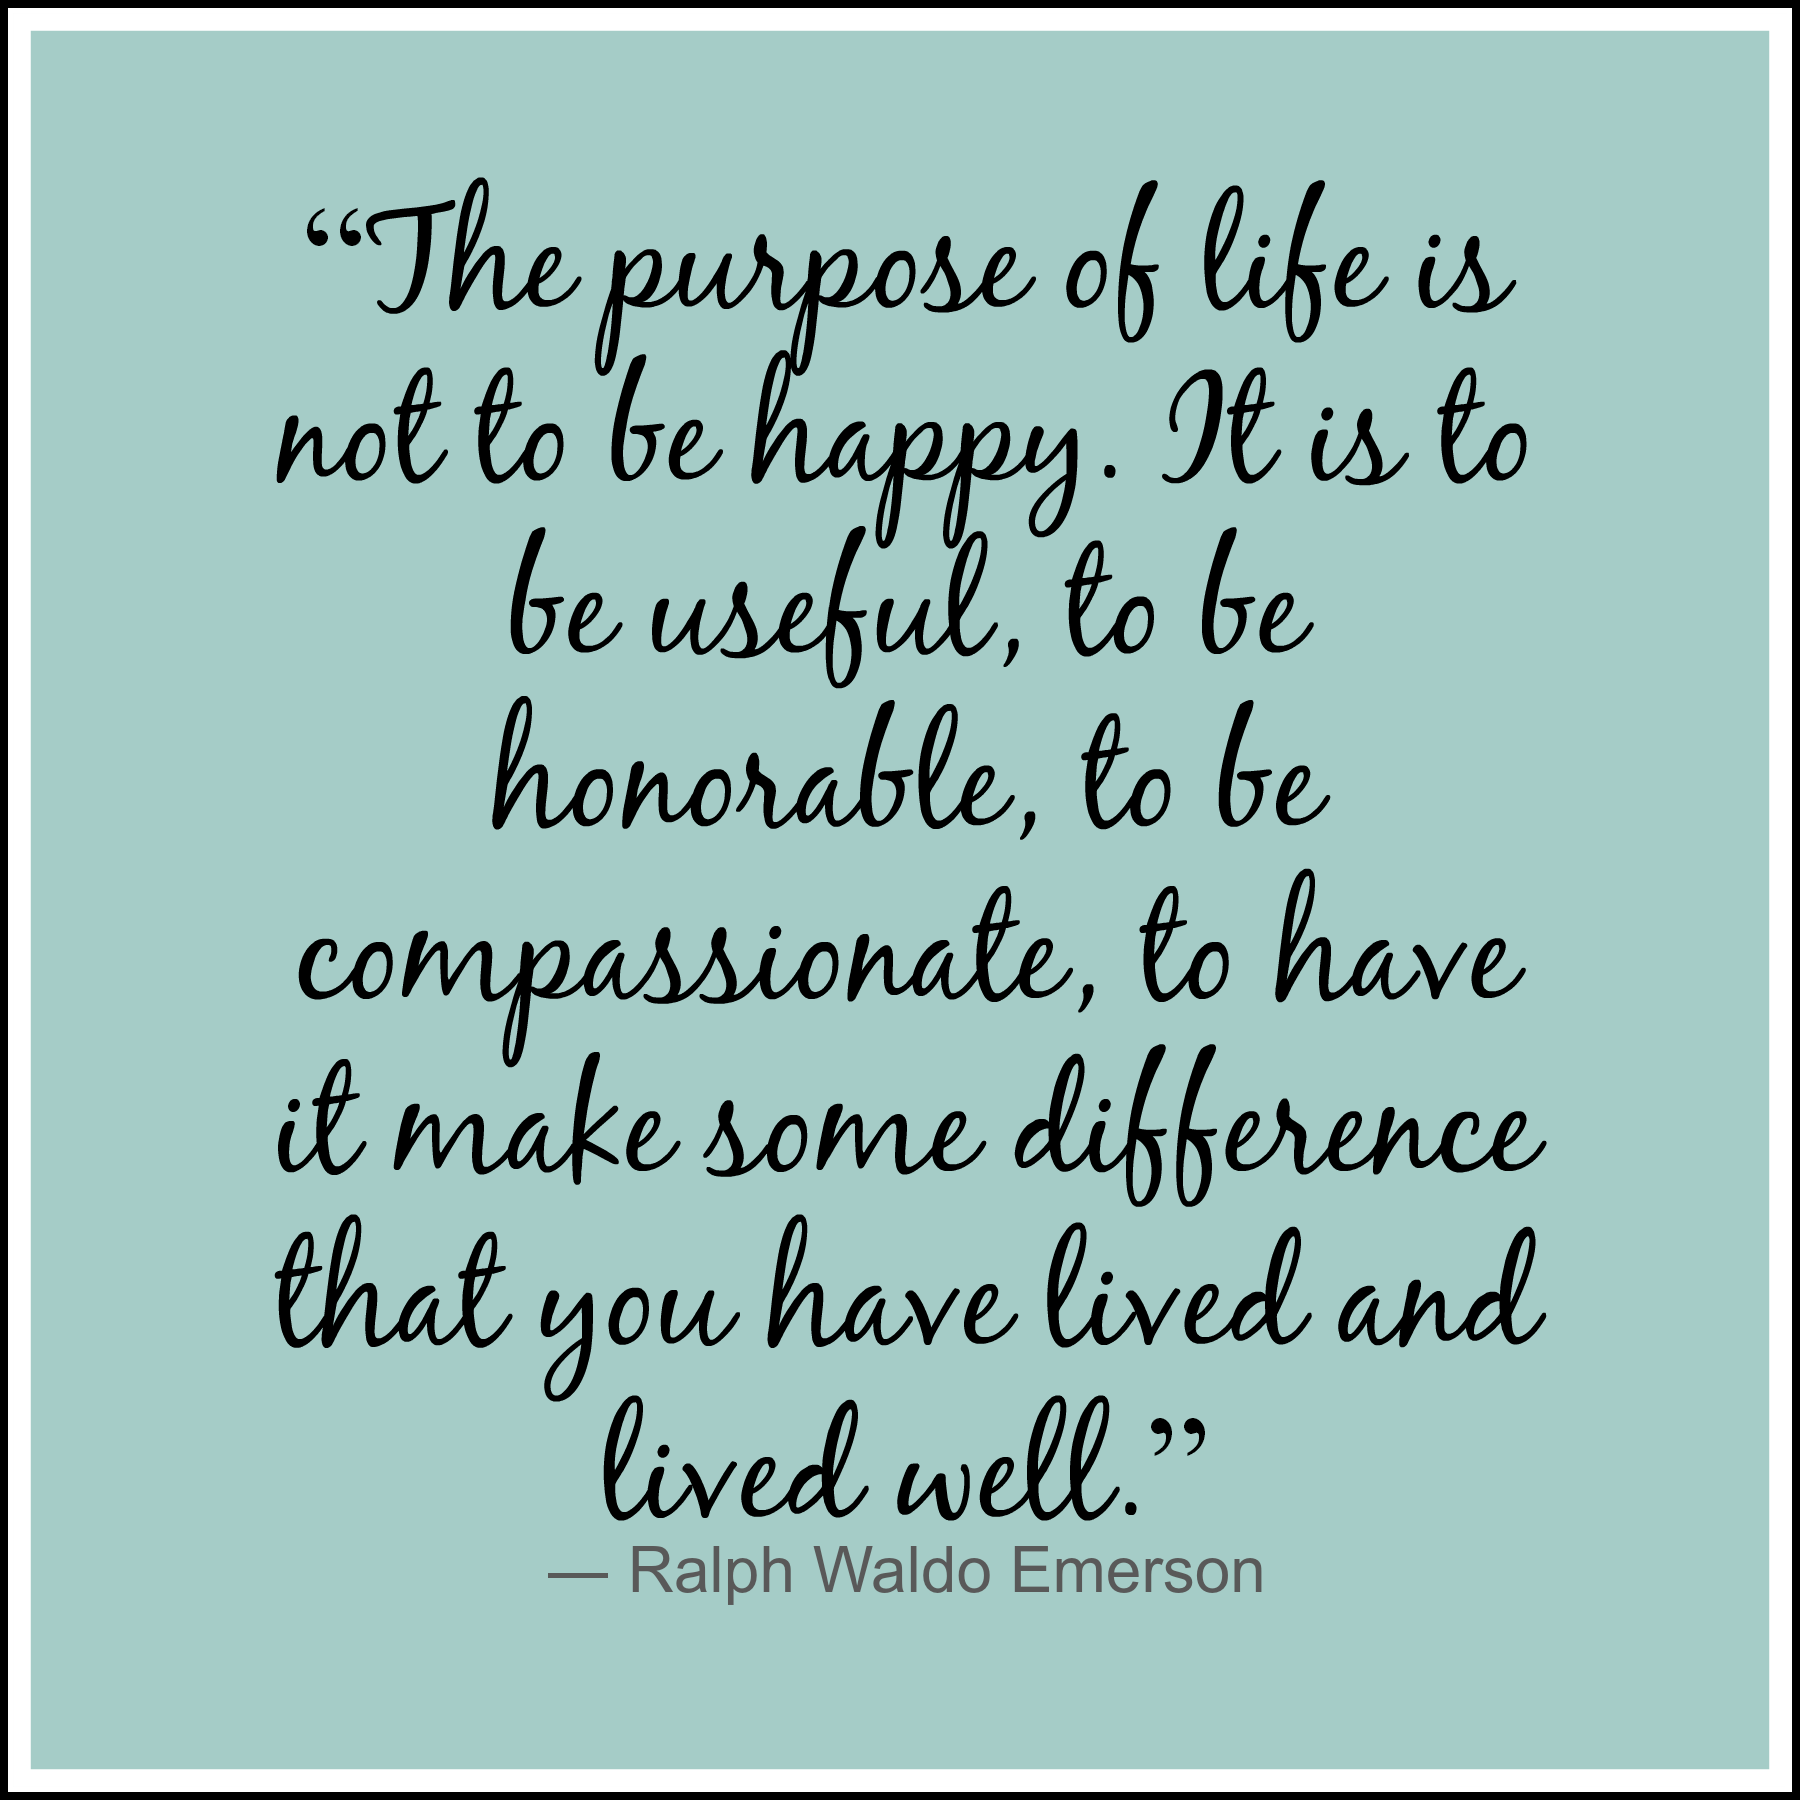 ralph waldo emerson 1 800 1 800 pixels quotes